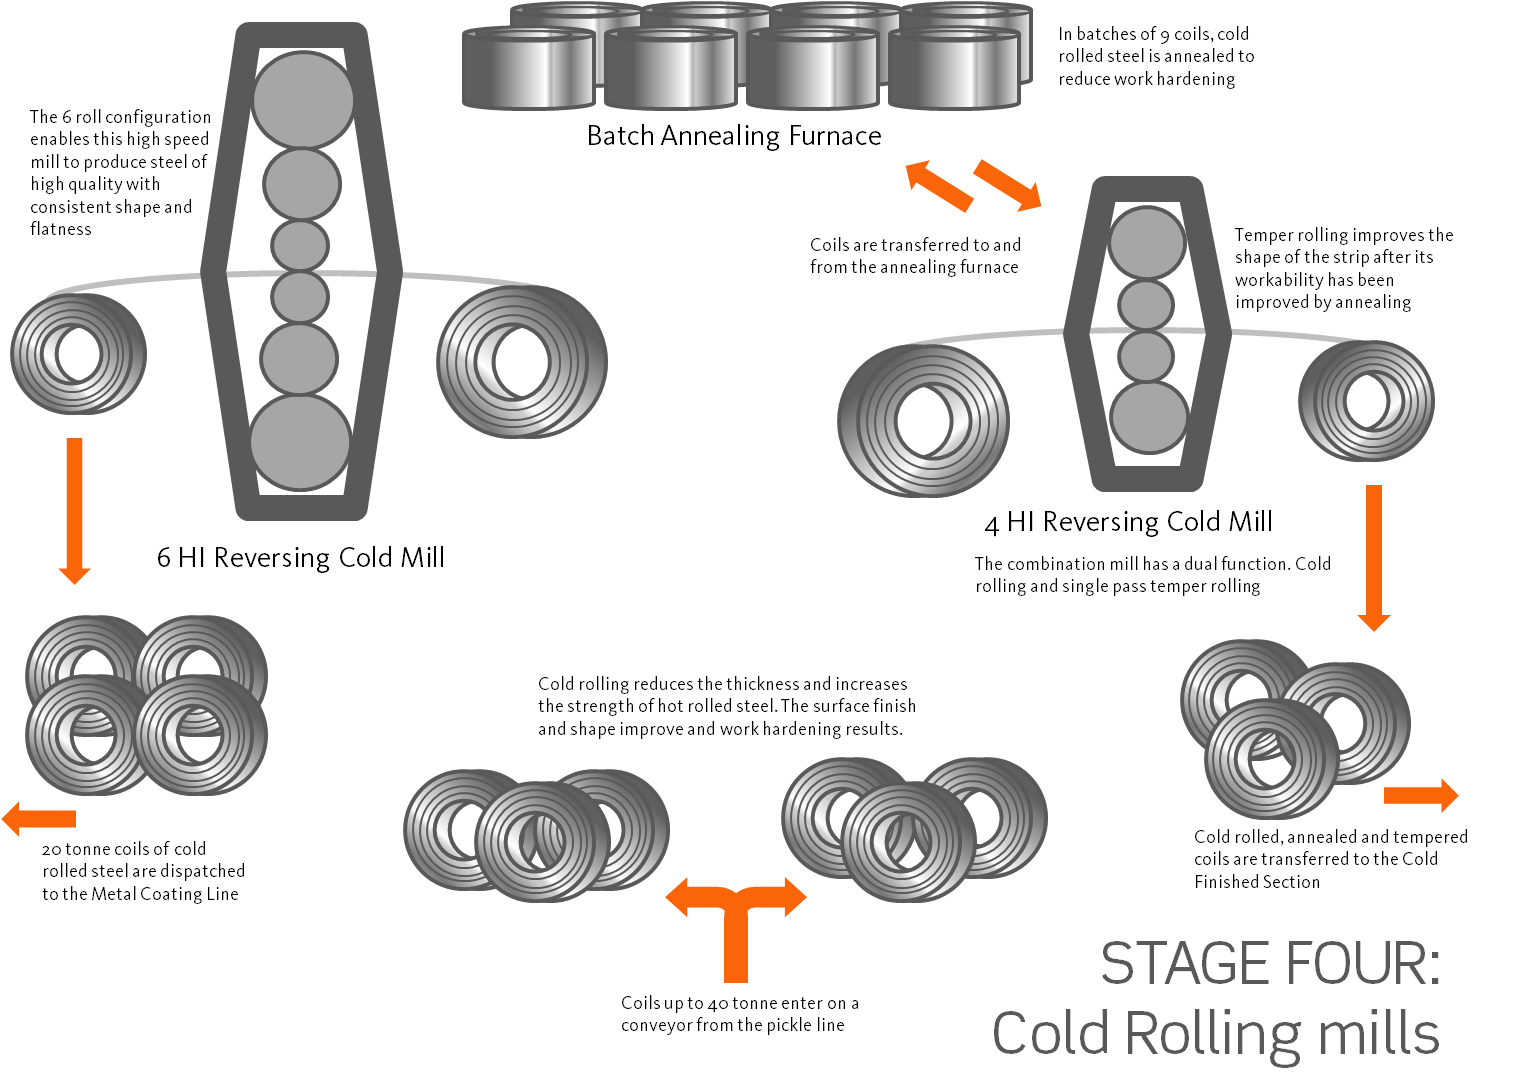 cold_rolling_mill_diagram.png